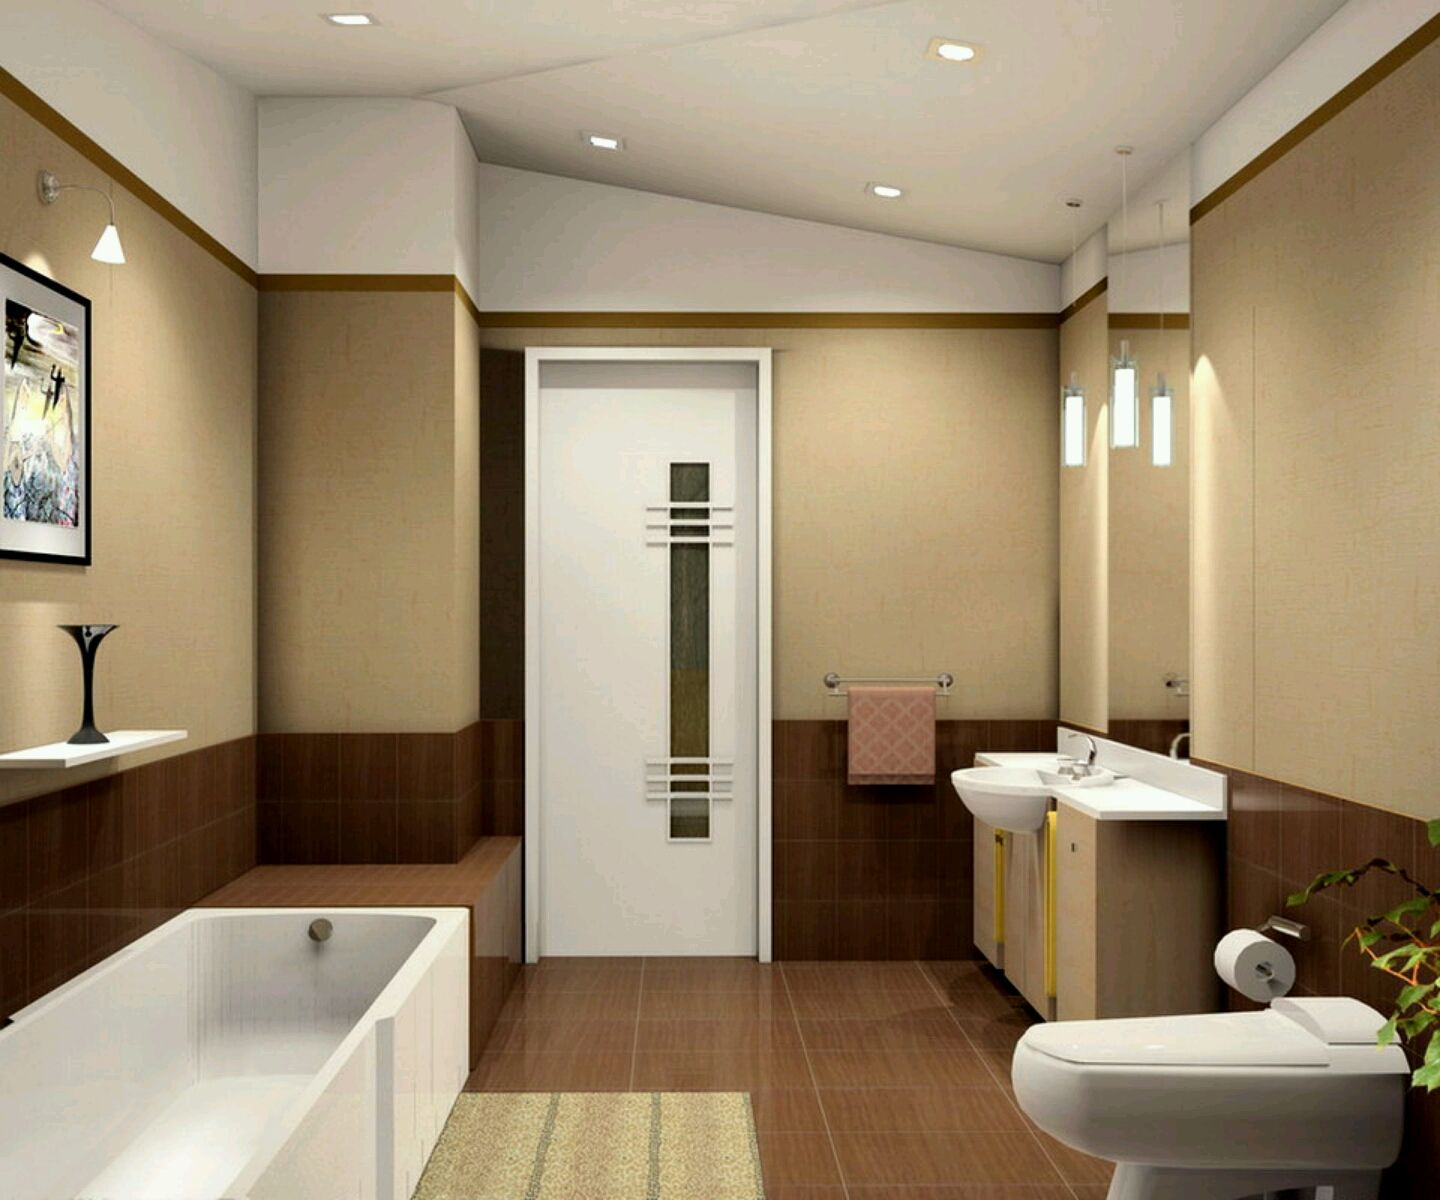 bathroom calming two tone brown wall paint colors with white lighting also modern bathroom interior marvelous modern bathroom designs you cannot regret to - Bathroom Ideas Brown Cream